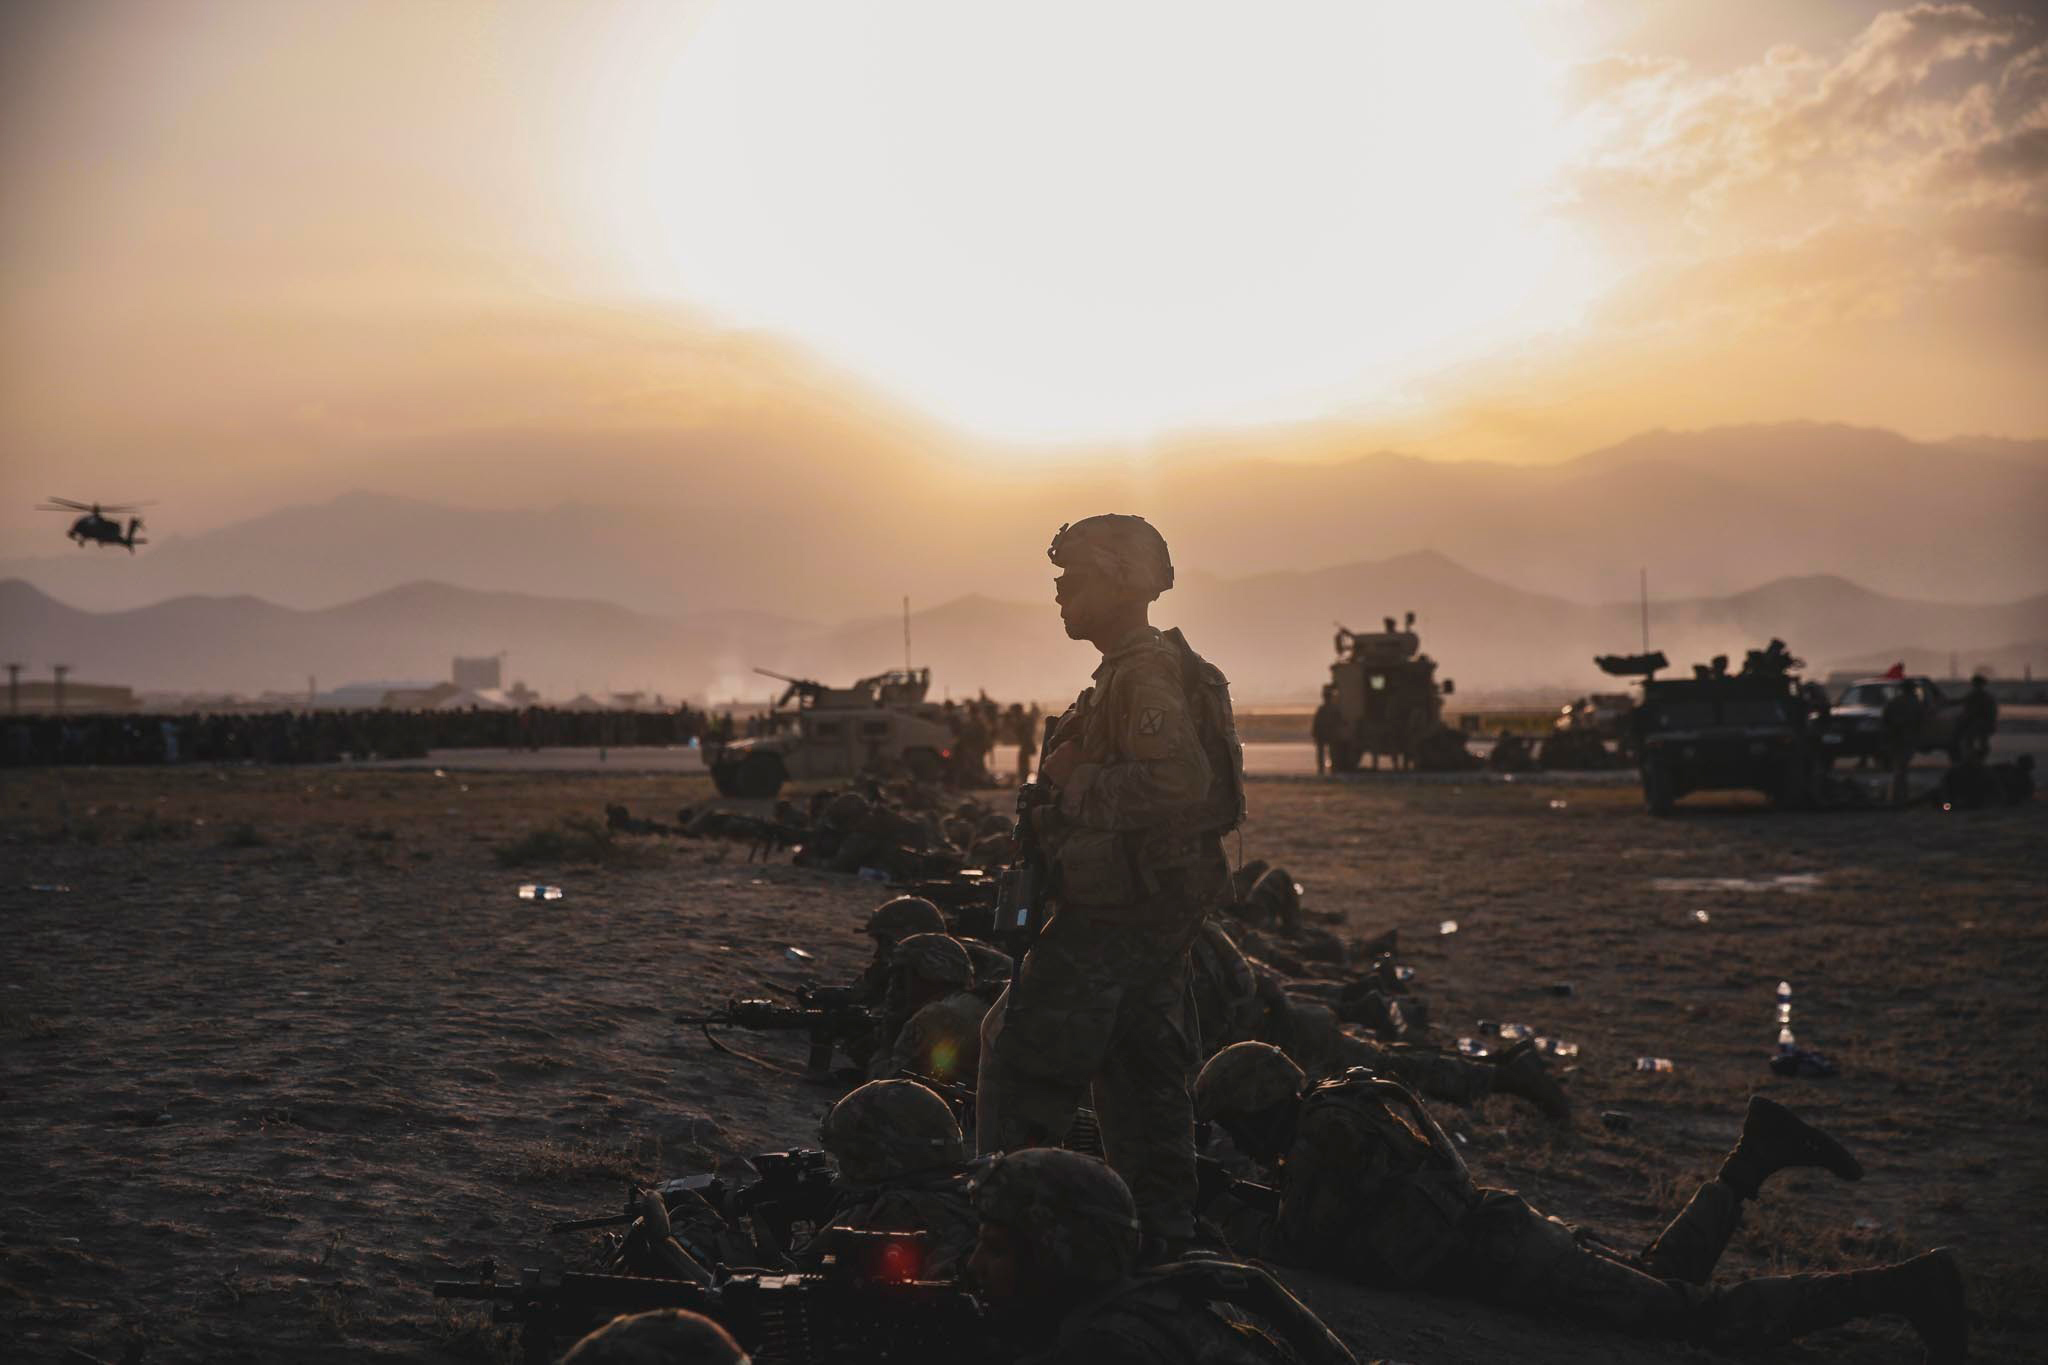 US Army soldiers assigned to the 10th Mountain Division stand security at Hamid Karzai International Airport in Kabul, Afghanistan, on August 16.